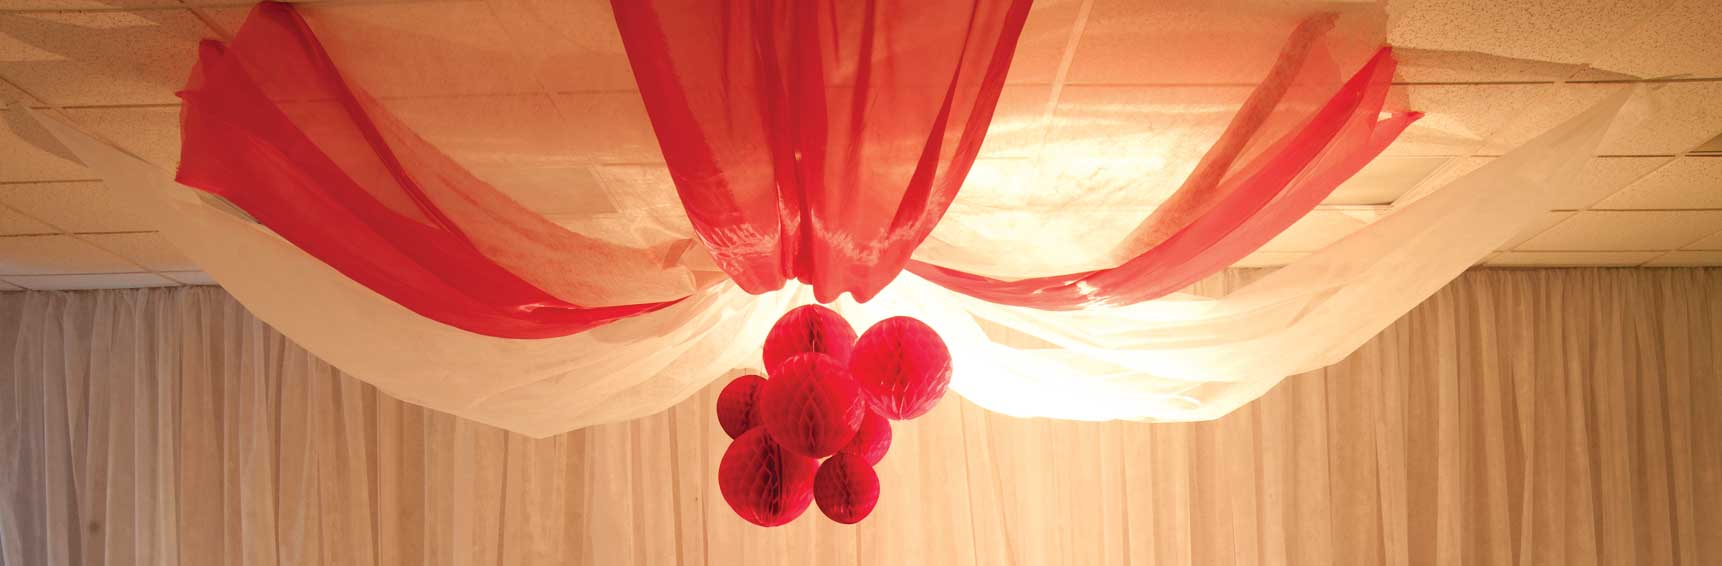 Andersons_Decorations & 12 Fast and Fun Prom Decorating Ideas | Andersonu0027s Blog